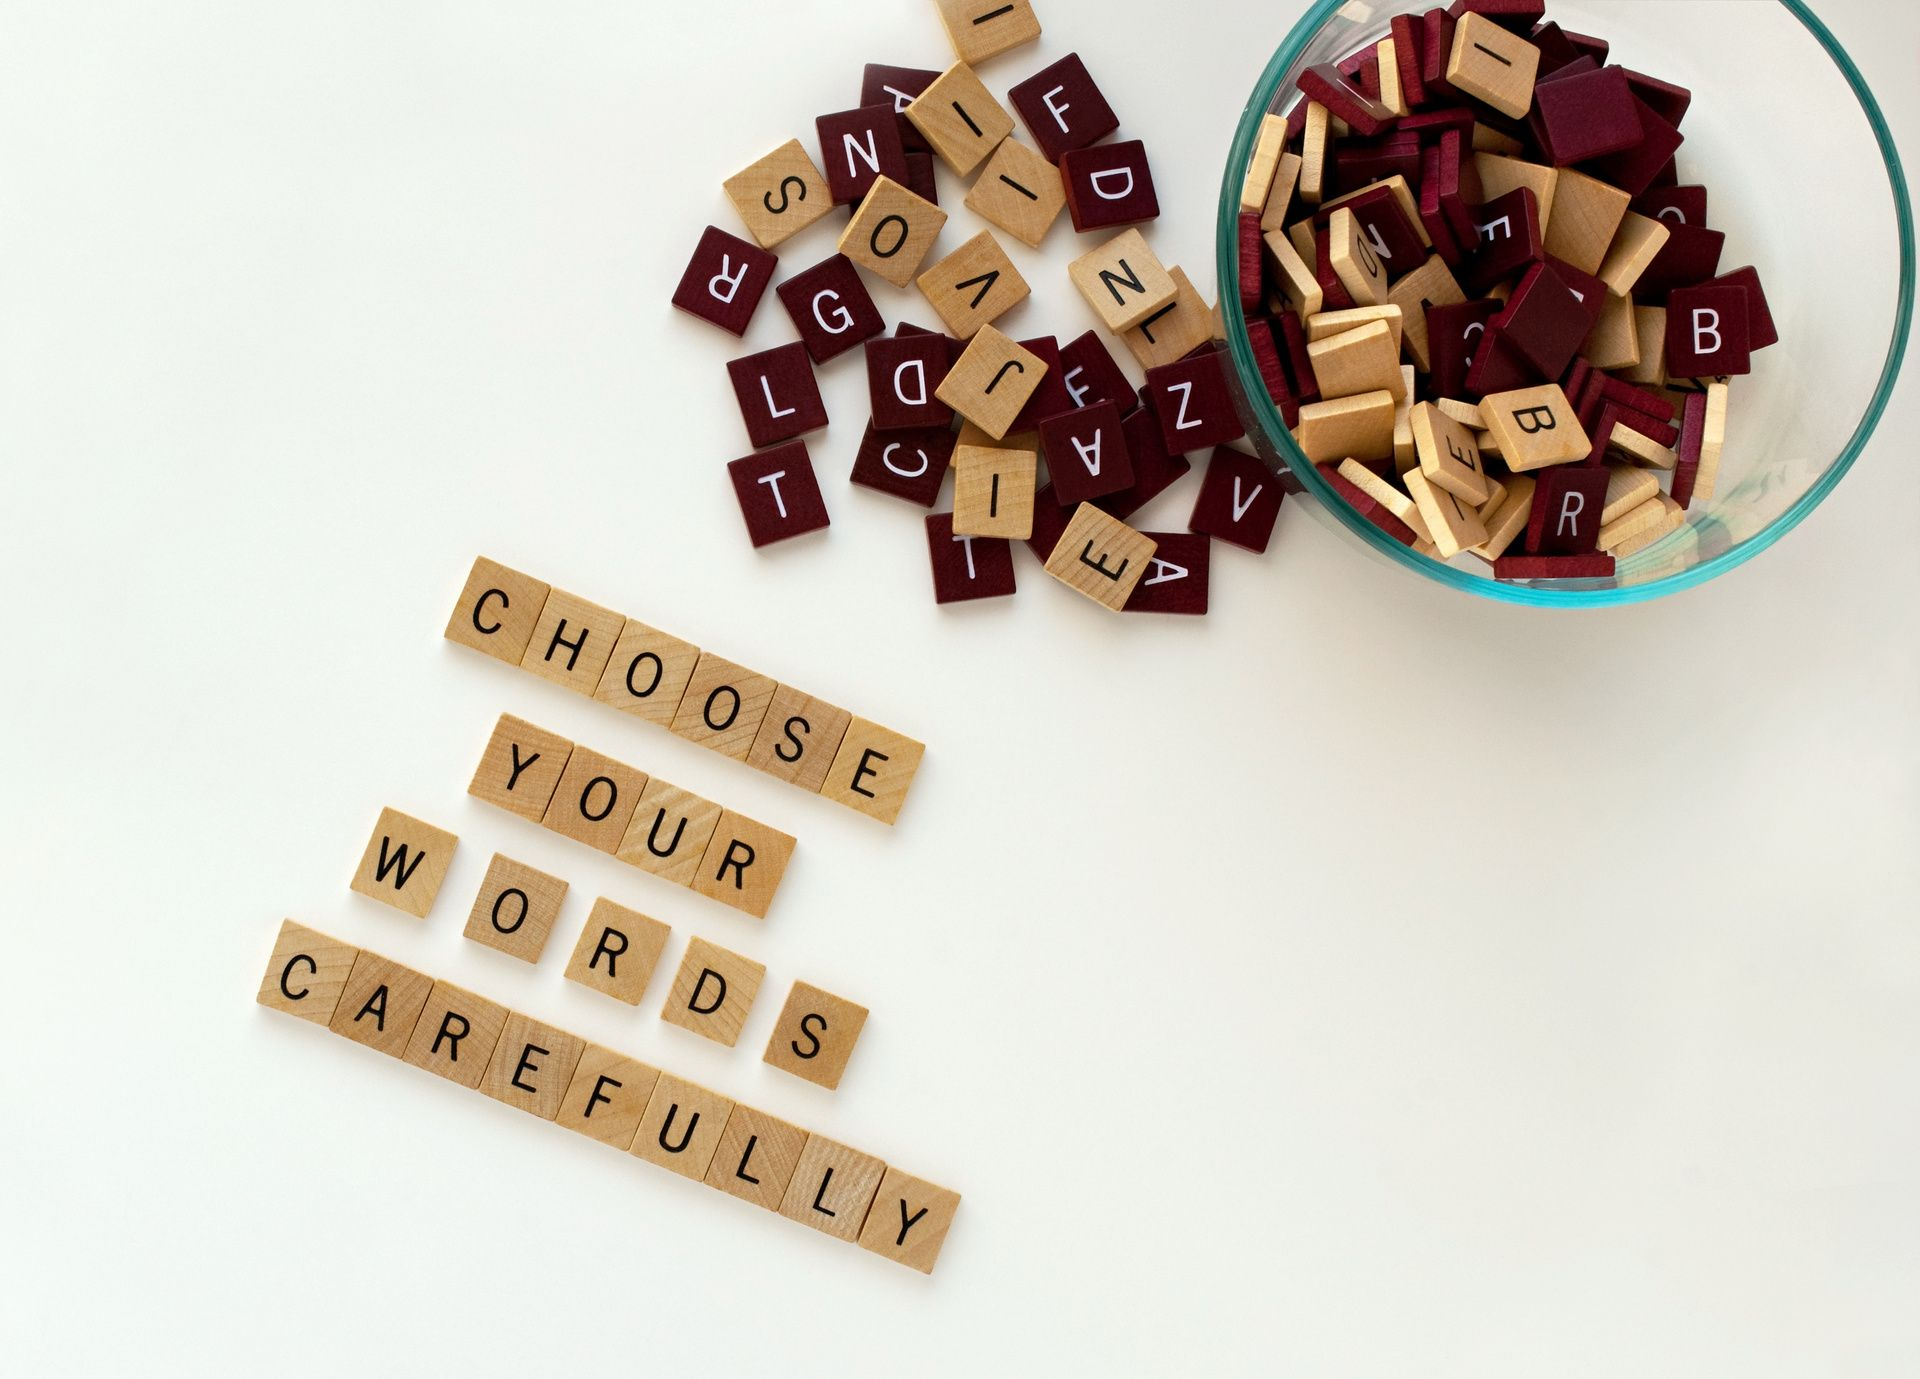 Choose Your Words Carefully spelled out in scrabble tiles